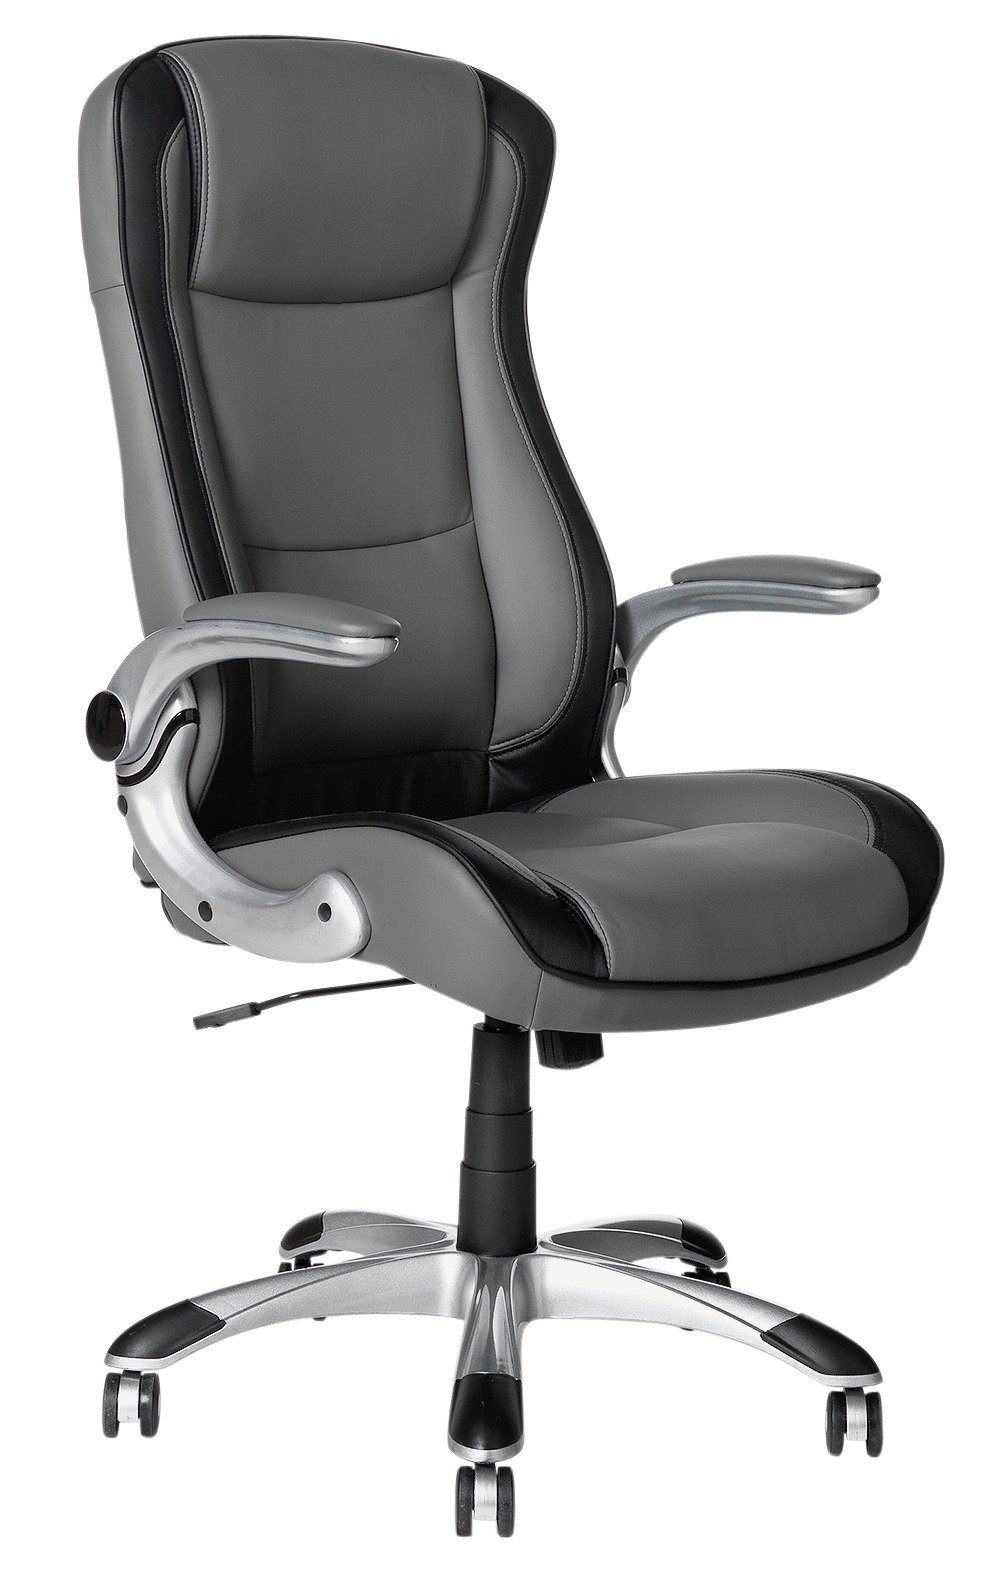 Buy Argos Home Dexter Adjustable Office Chair - Grey | Office chairs | Argos  sc 1 st  Argos : argos office chairs - Cheerinfomania.Com